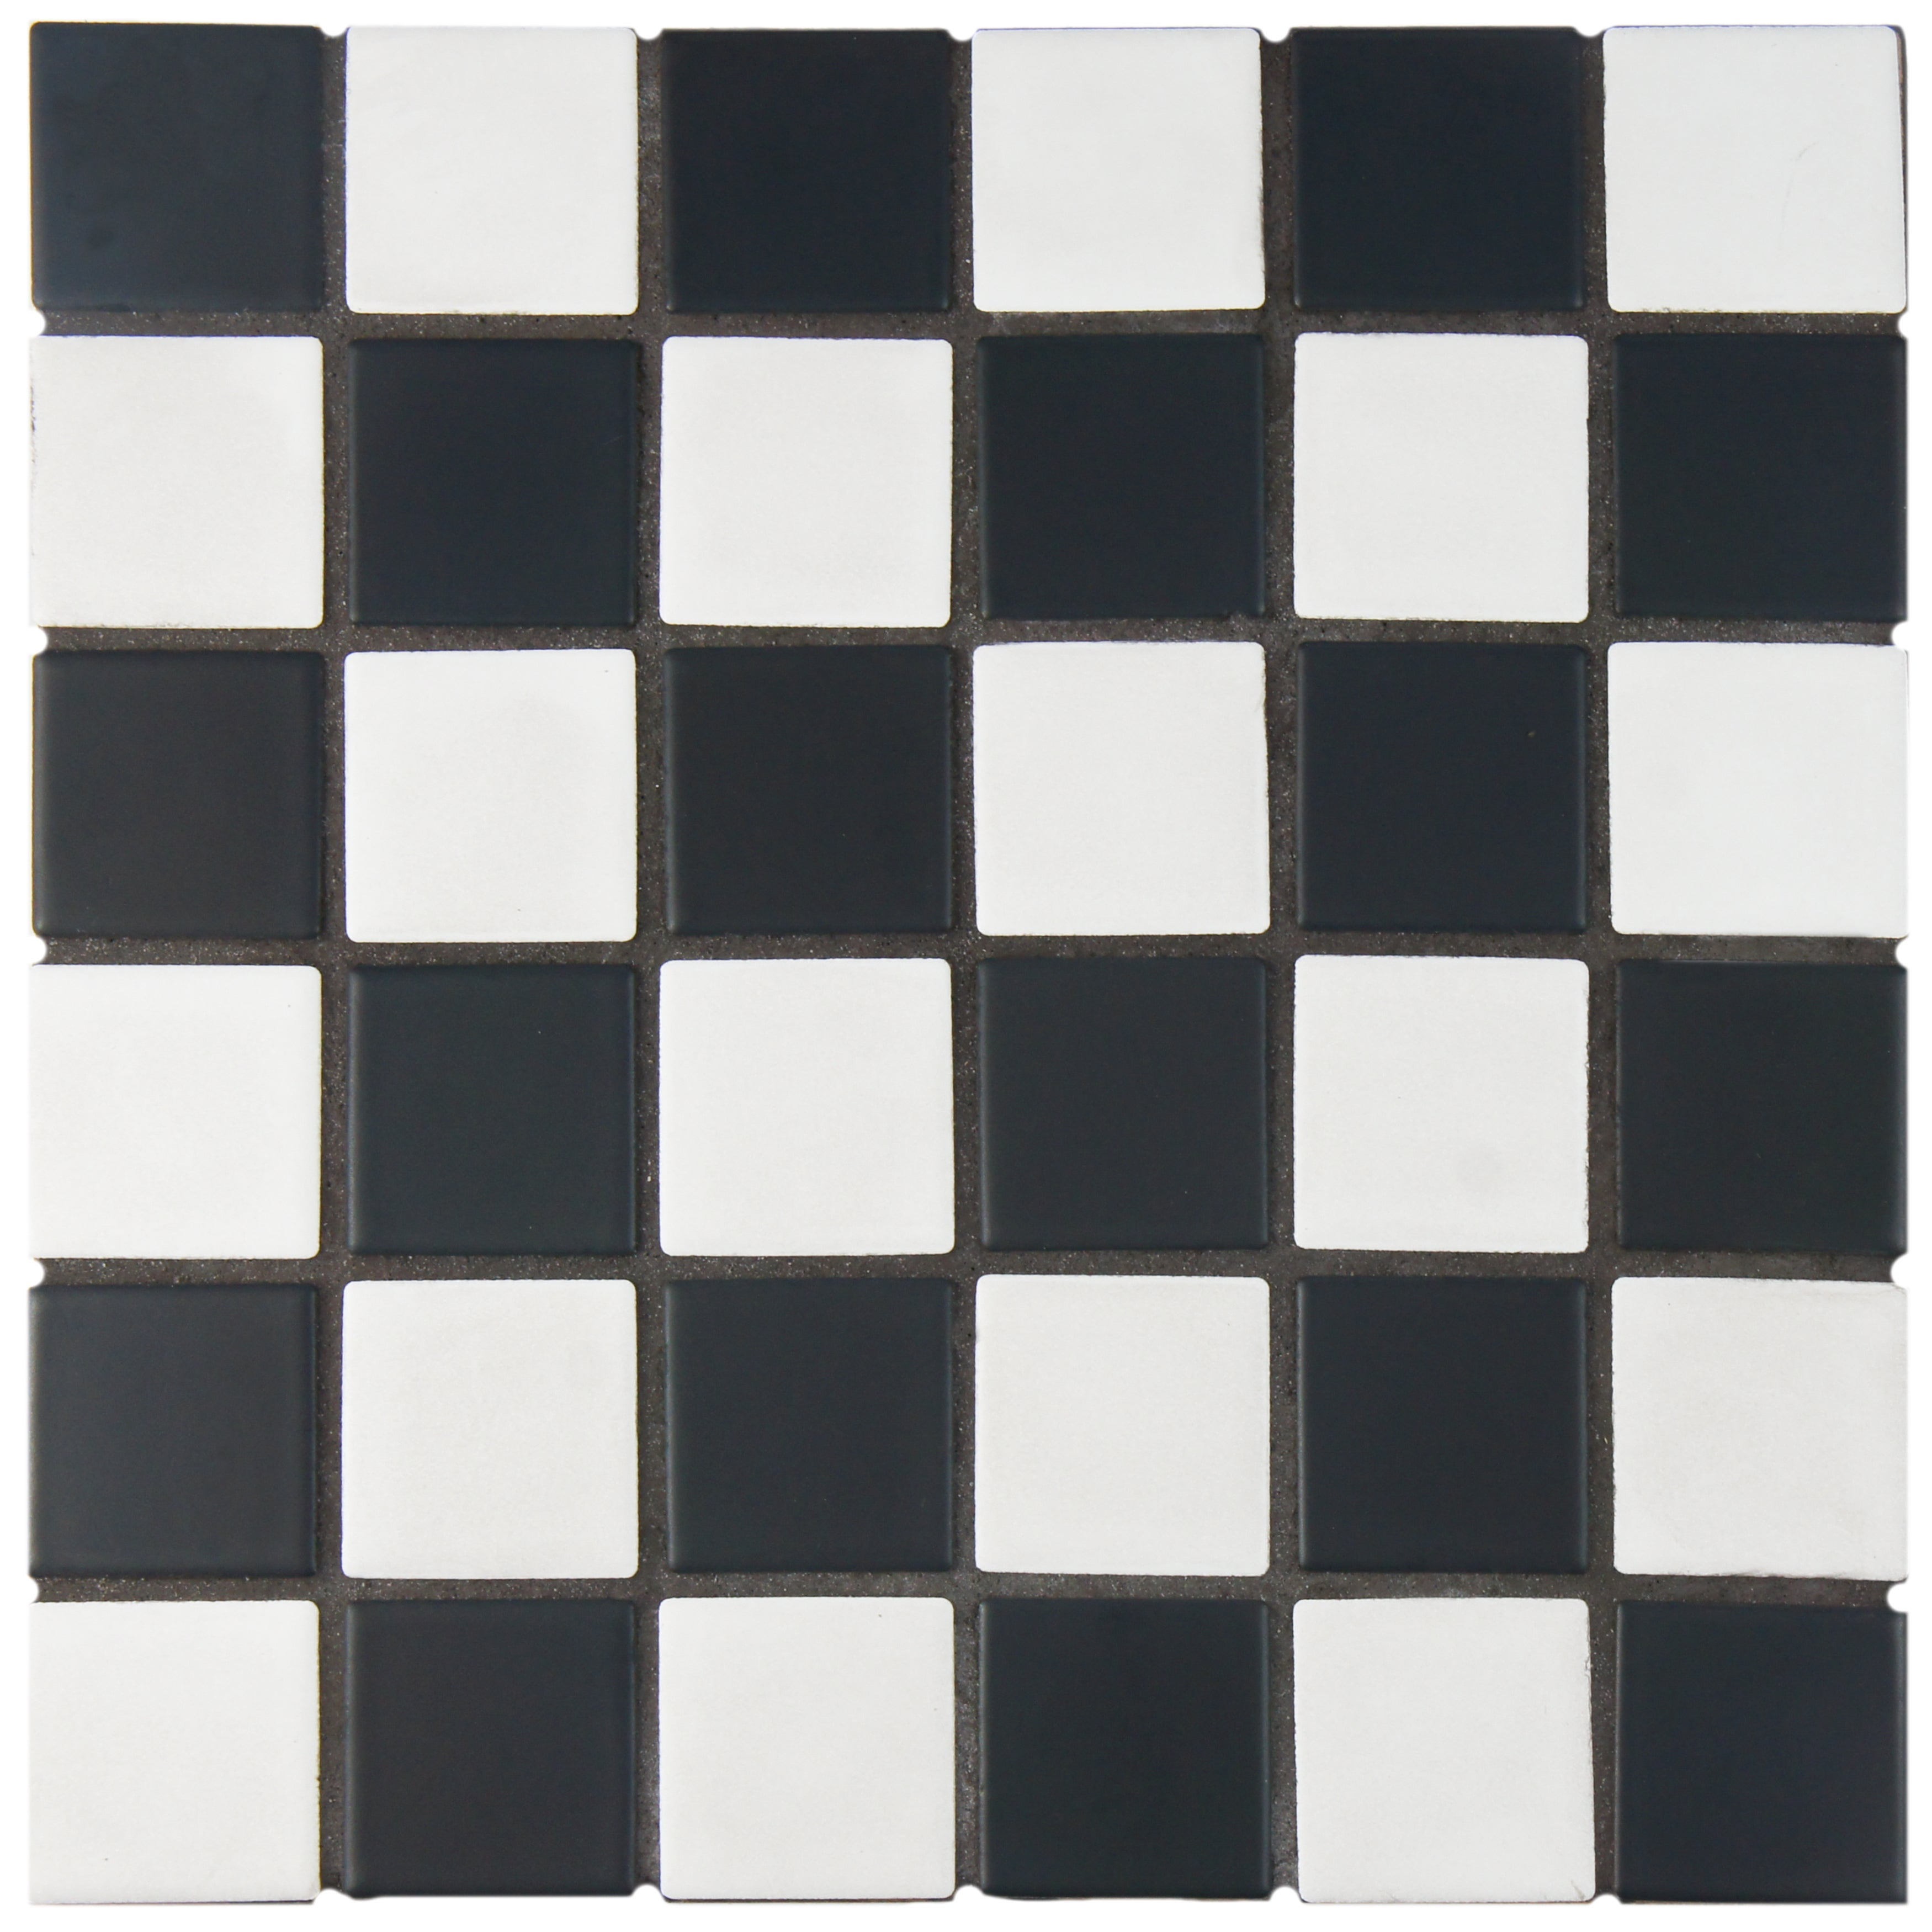 Somertile 125x125 knight matte black white checkerboard somertile 125x125 knight matte black white checkerboard porcelain floor and wall tile case of 10 free shipping today overstock 17443534 dailygadgetfo Image collections